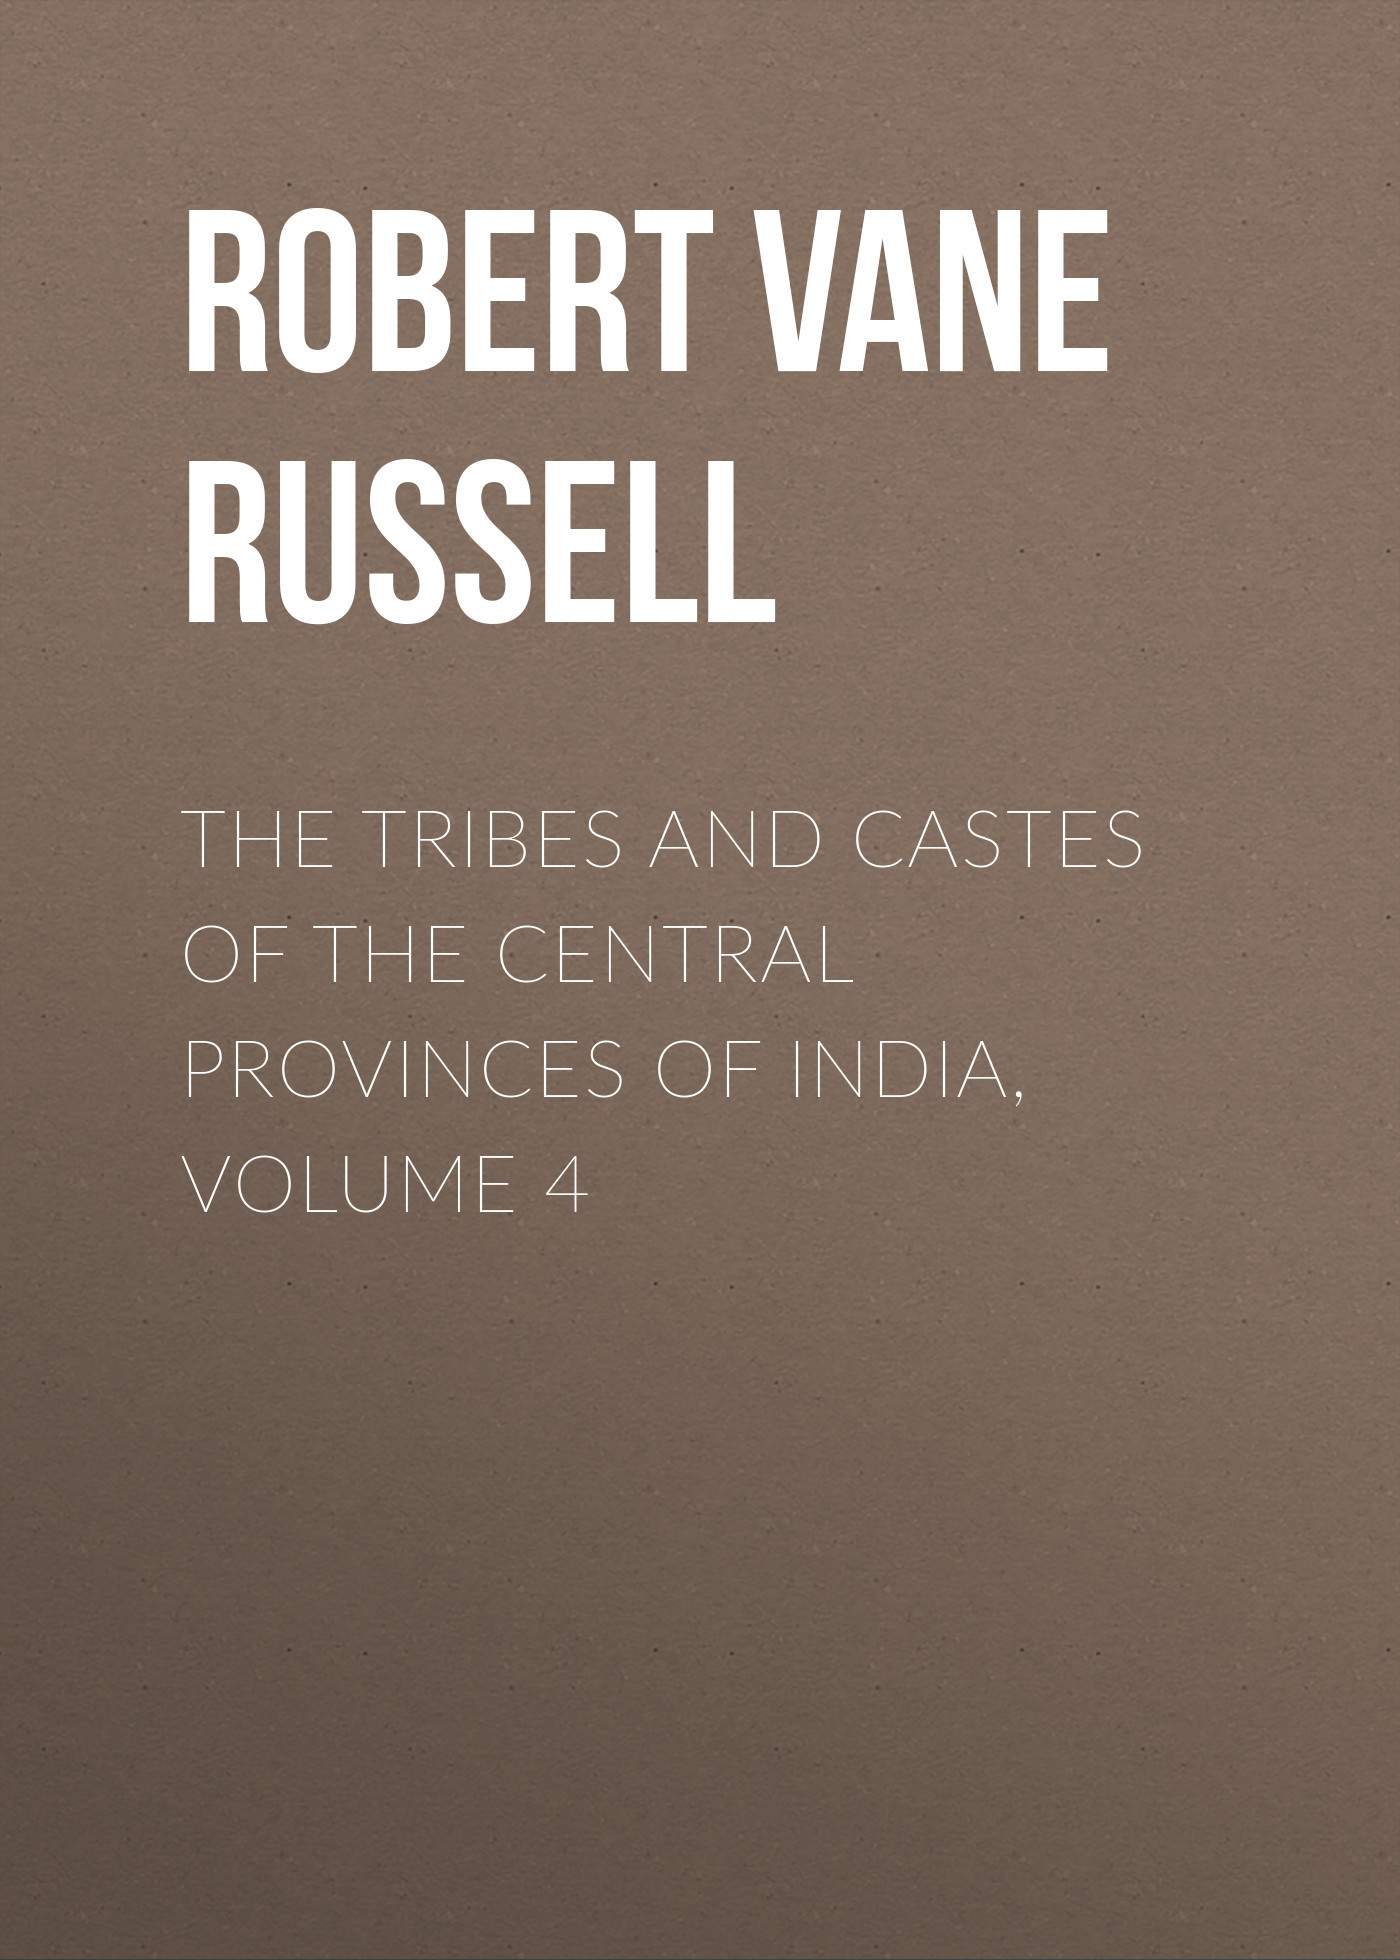 Robert Vane Russell The Tribes and Castes of the Central Provinces of India, Volume 4 гель nivea nivea ni026lwviu43